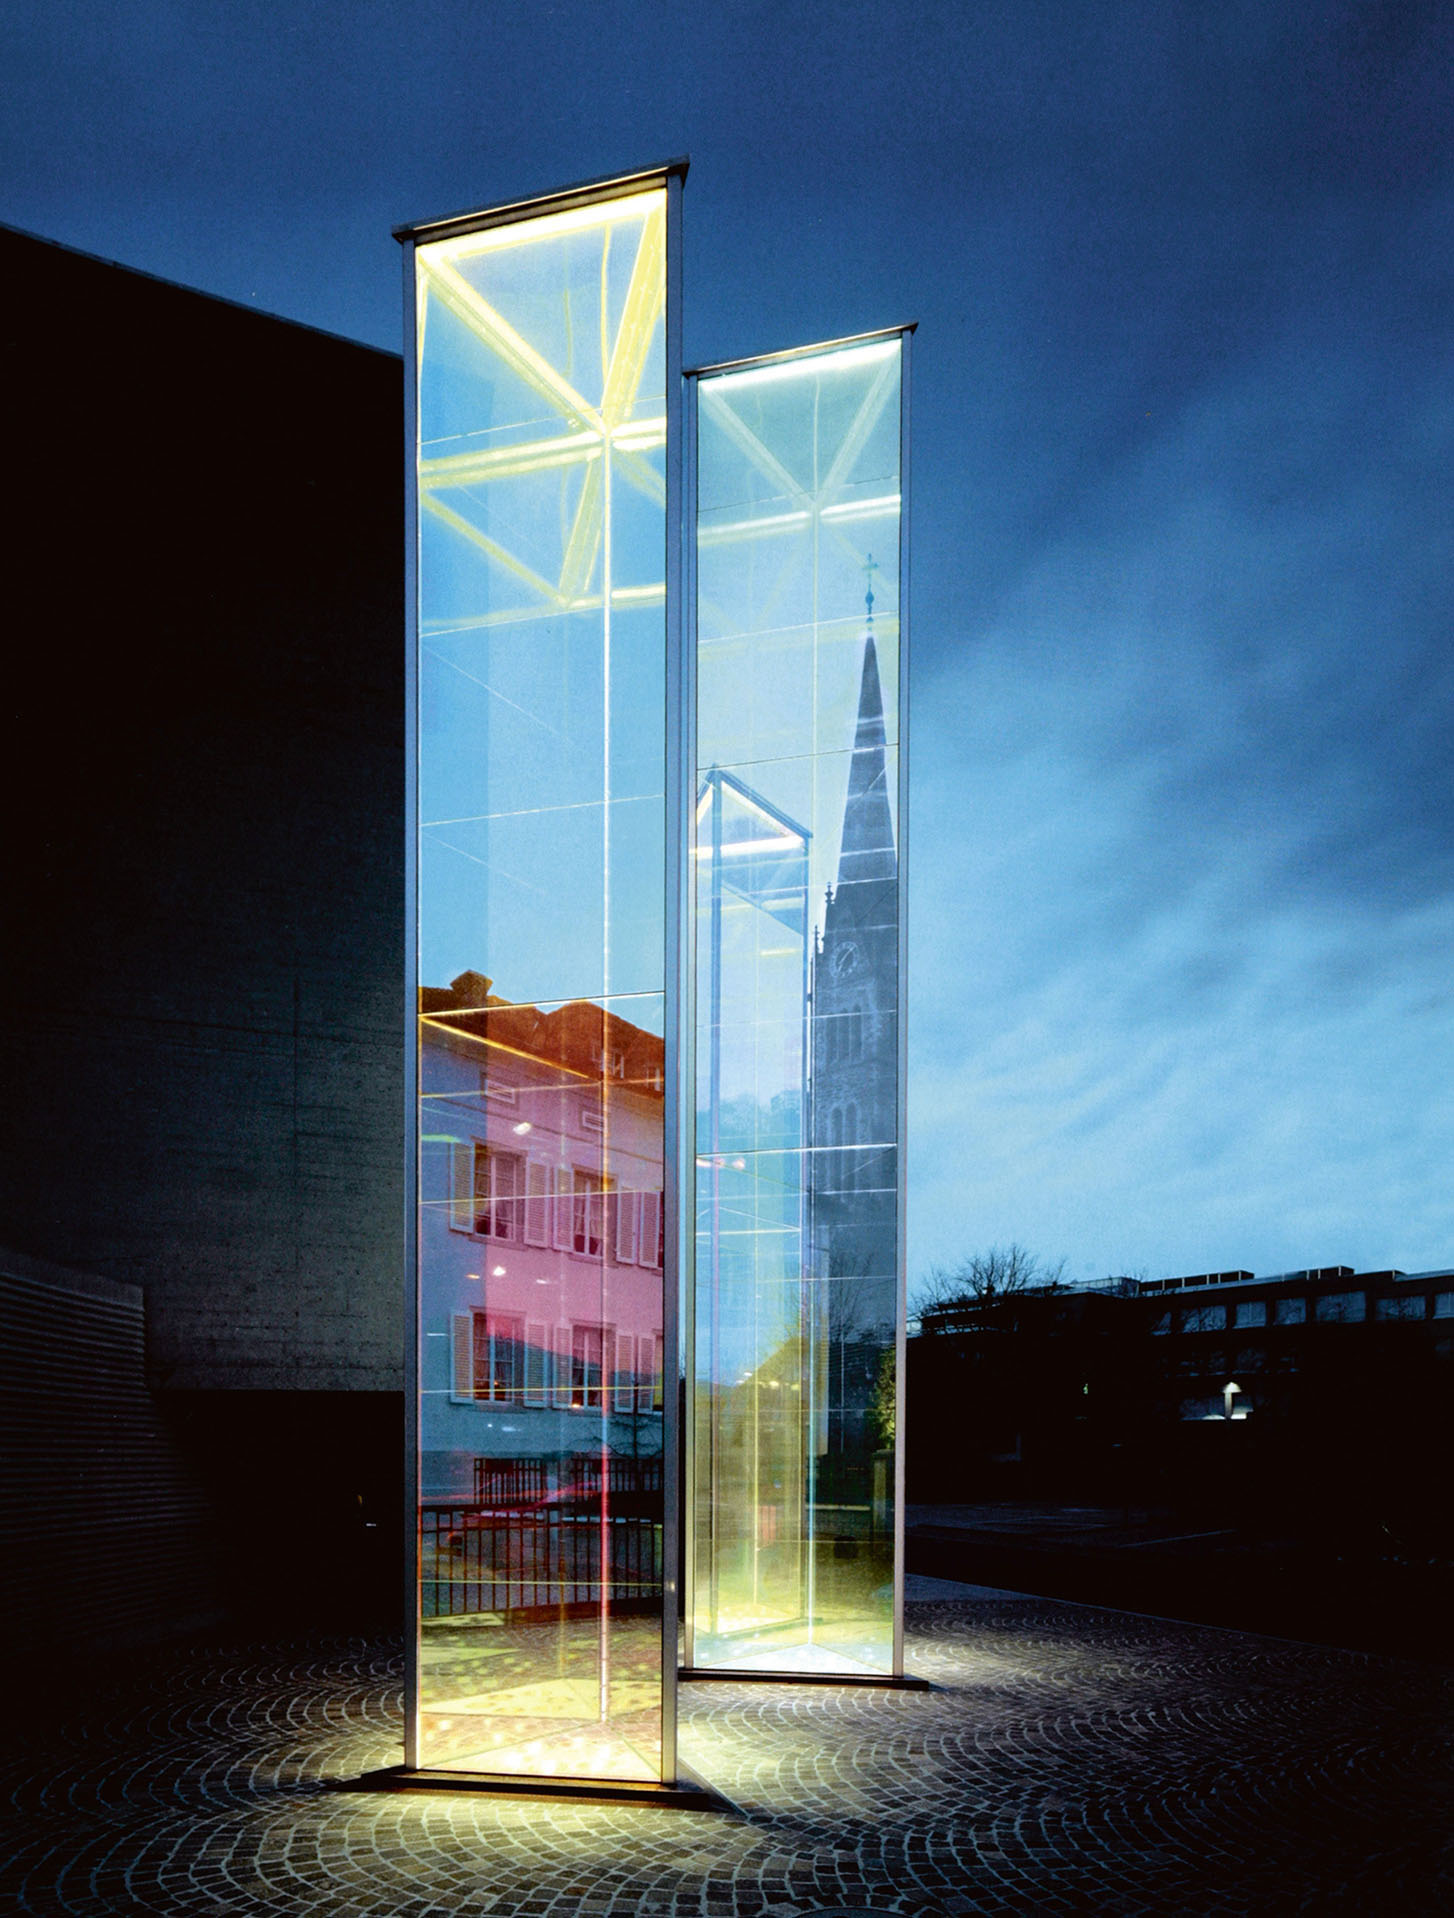 Heinz Mack, Two glass prisms, 2002, coated glass, height = 8 m and 10 m, WVZ R 1517